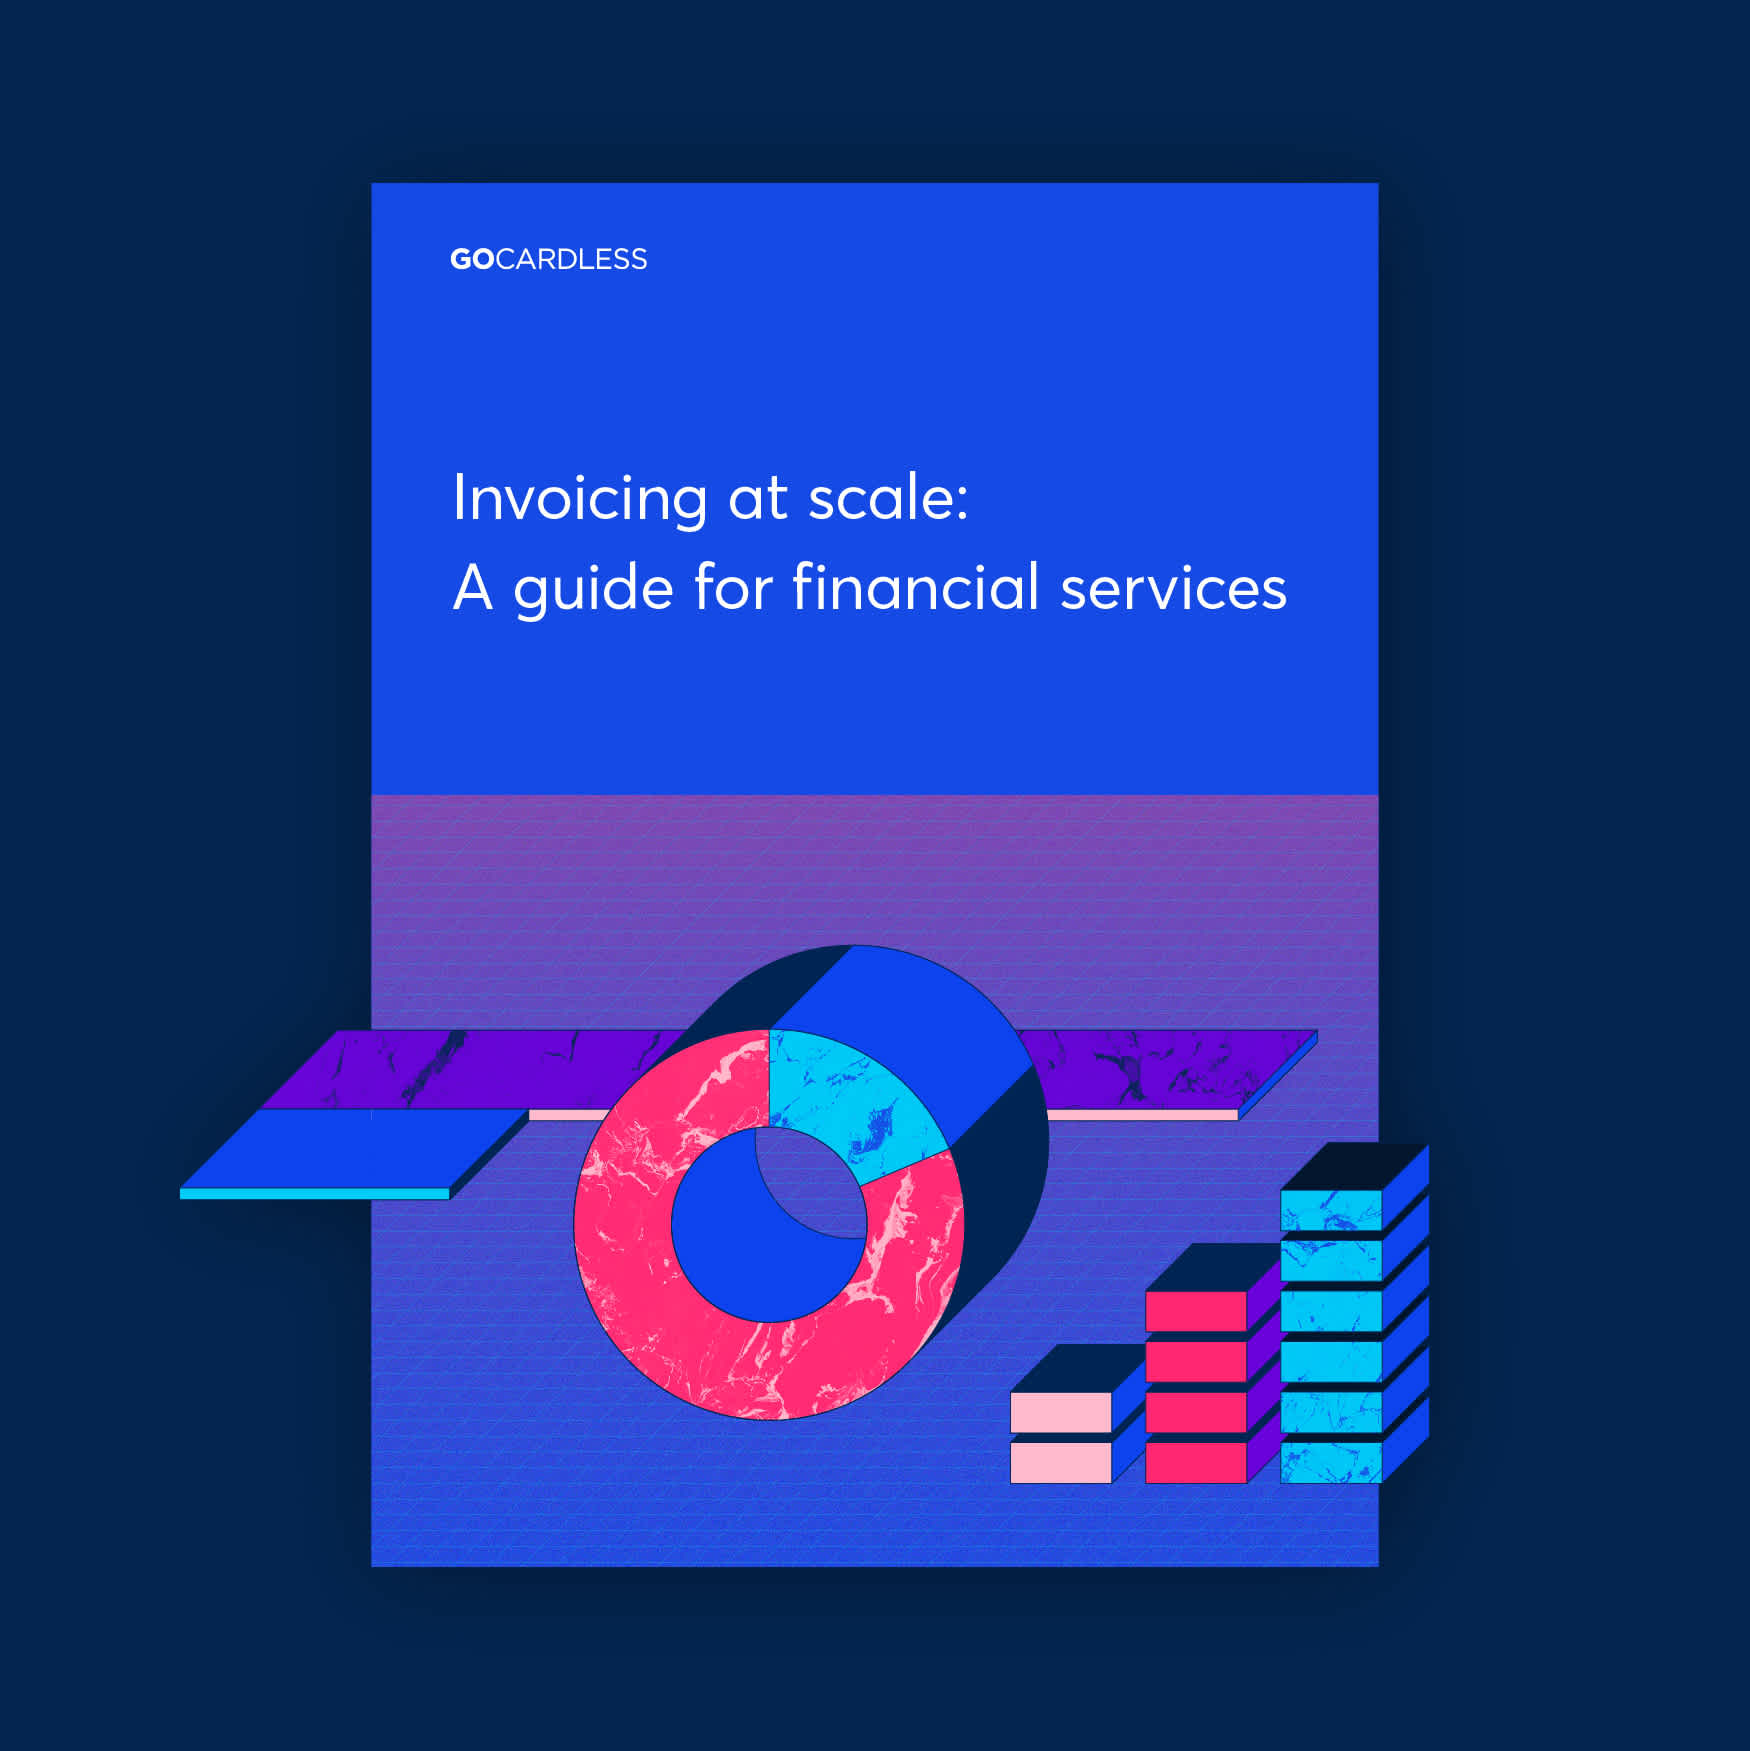 Invoicing at scale: A guide for financial services